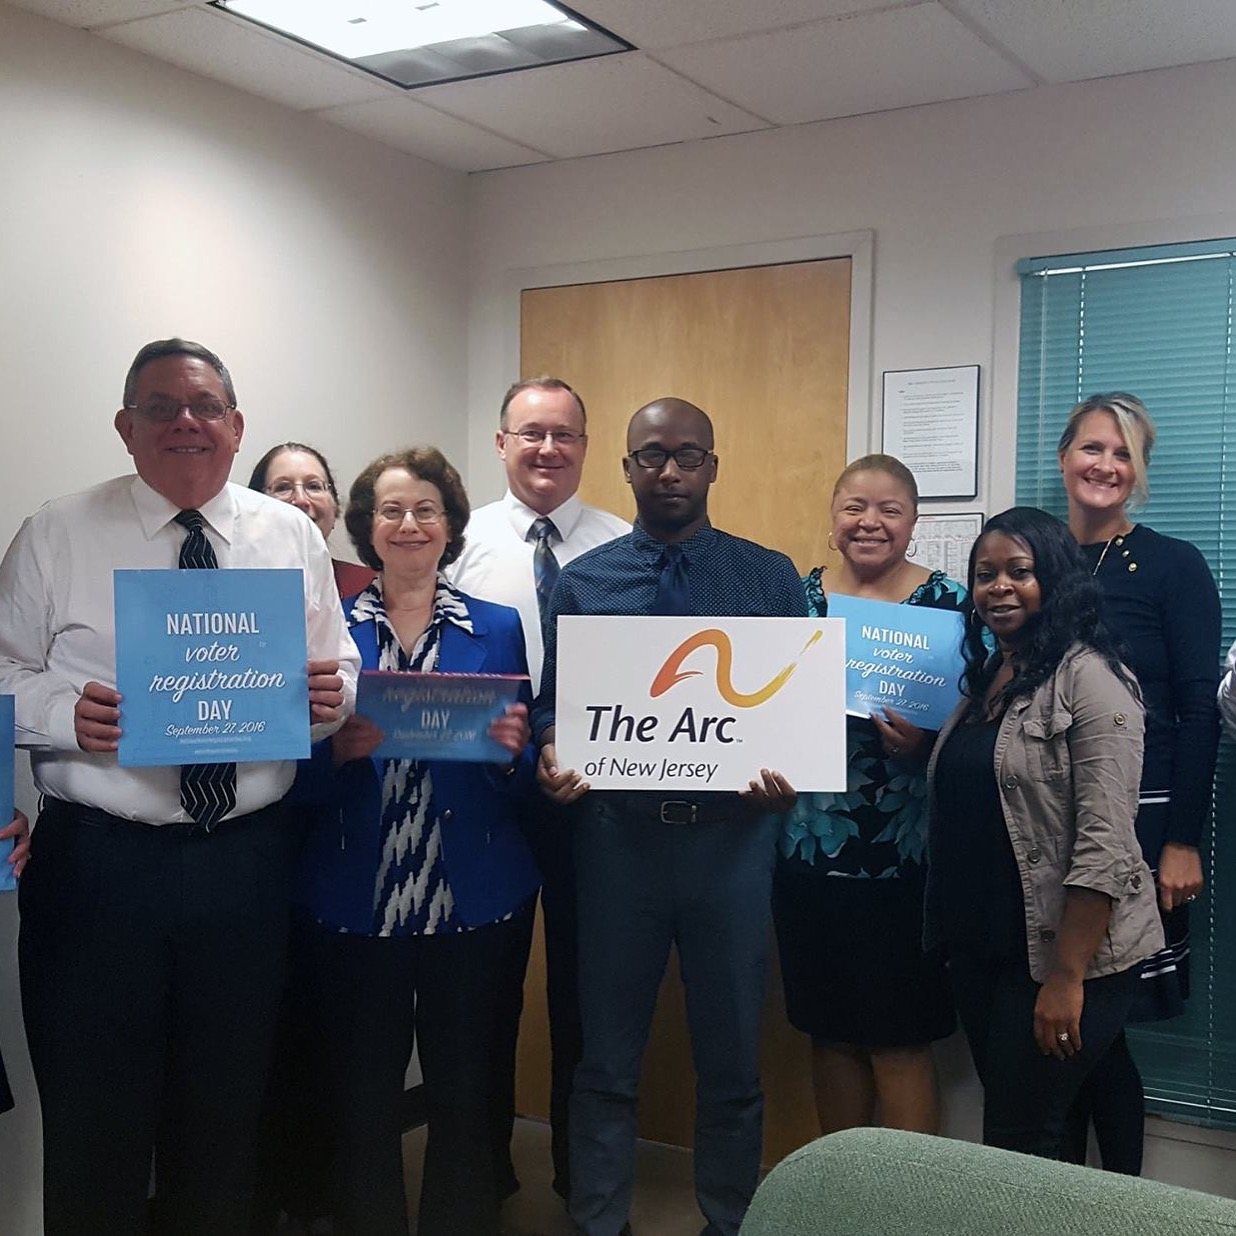 The Arc of New Jersey Get's Out the Vote